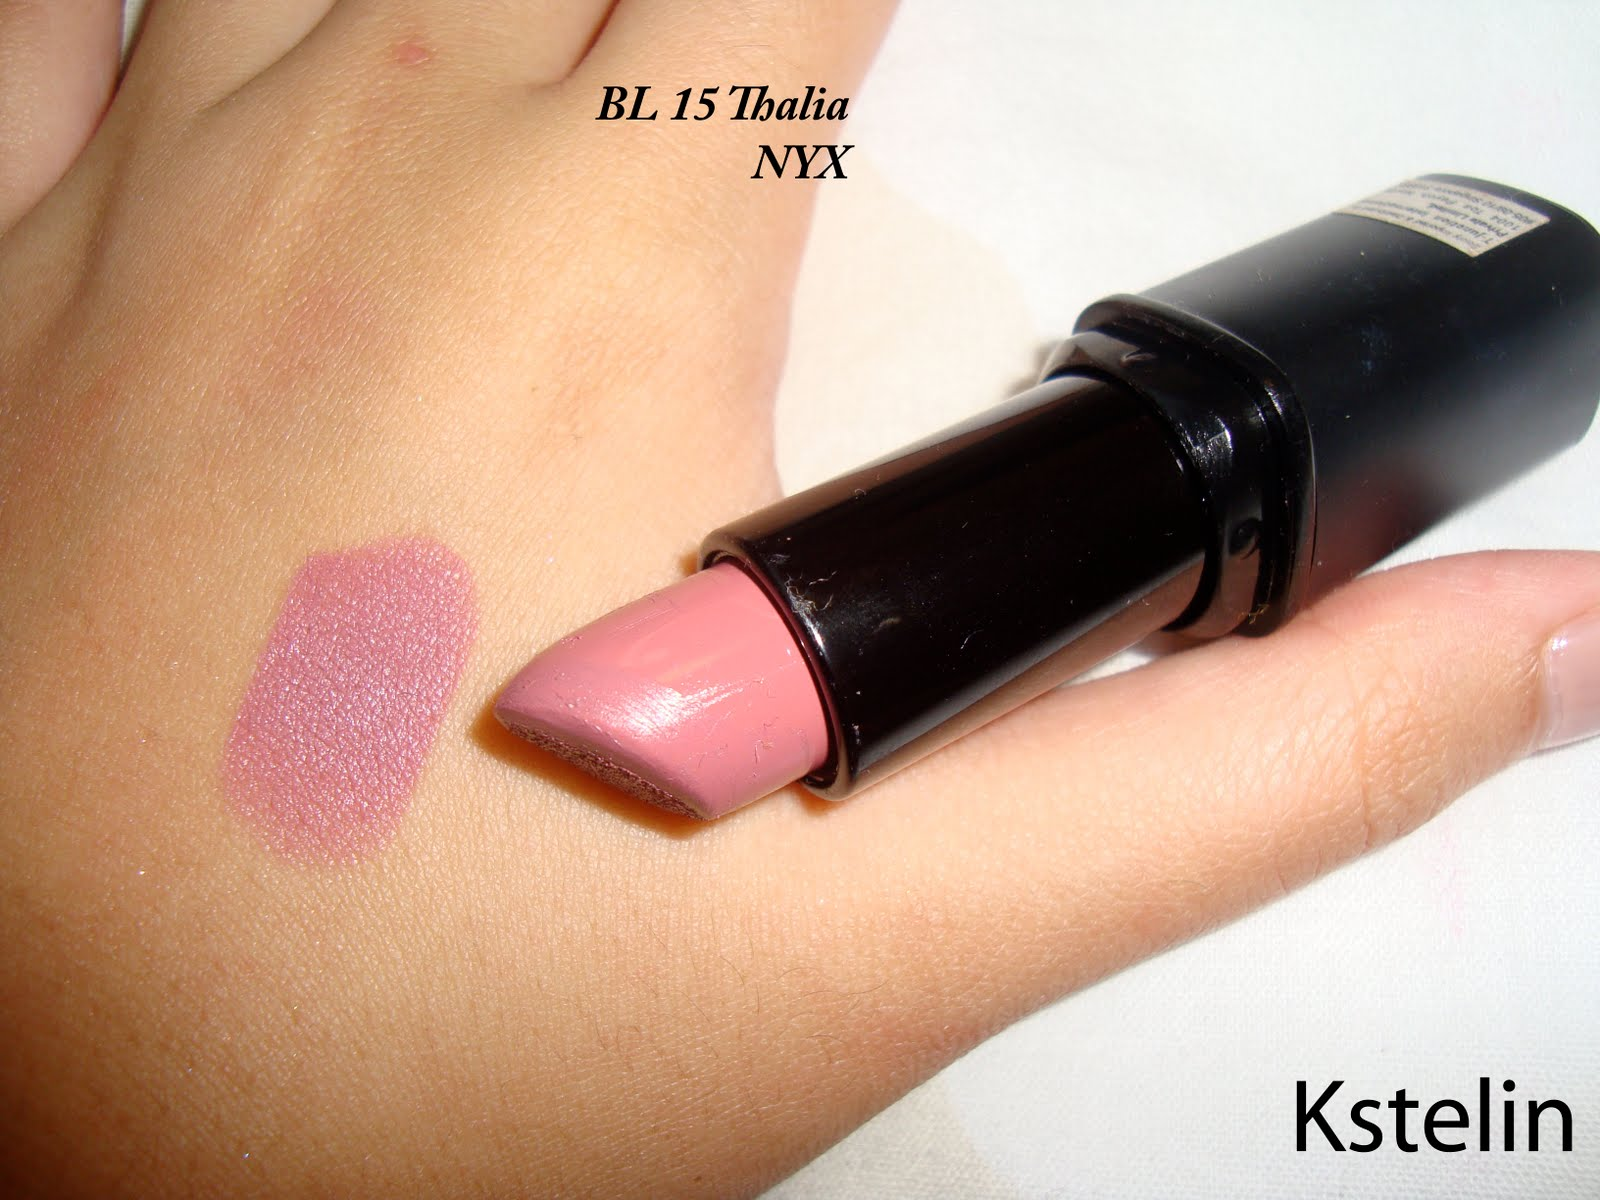 kstelin lipstick and lipgloss collection swatches review